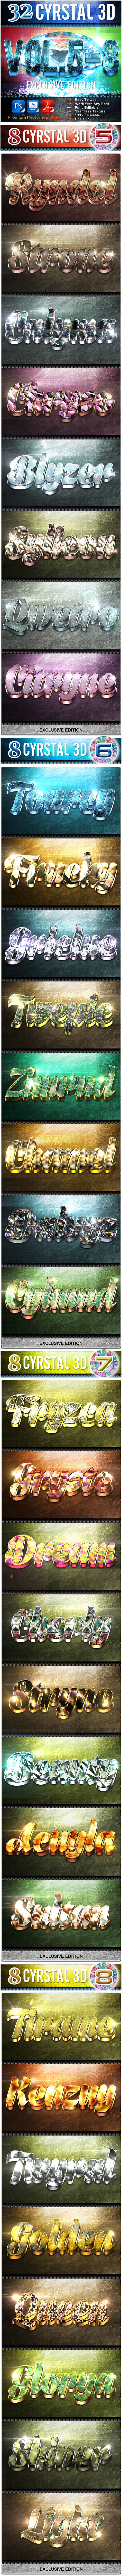 32 Cyrstal 3D_Bundle (Vol.5-8) - Text Effects Styles